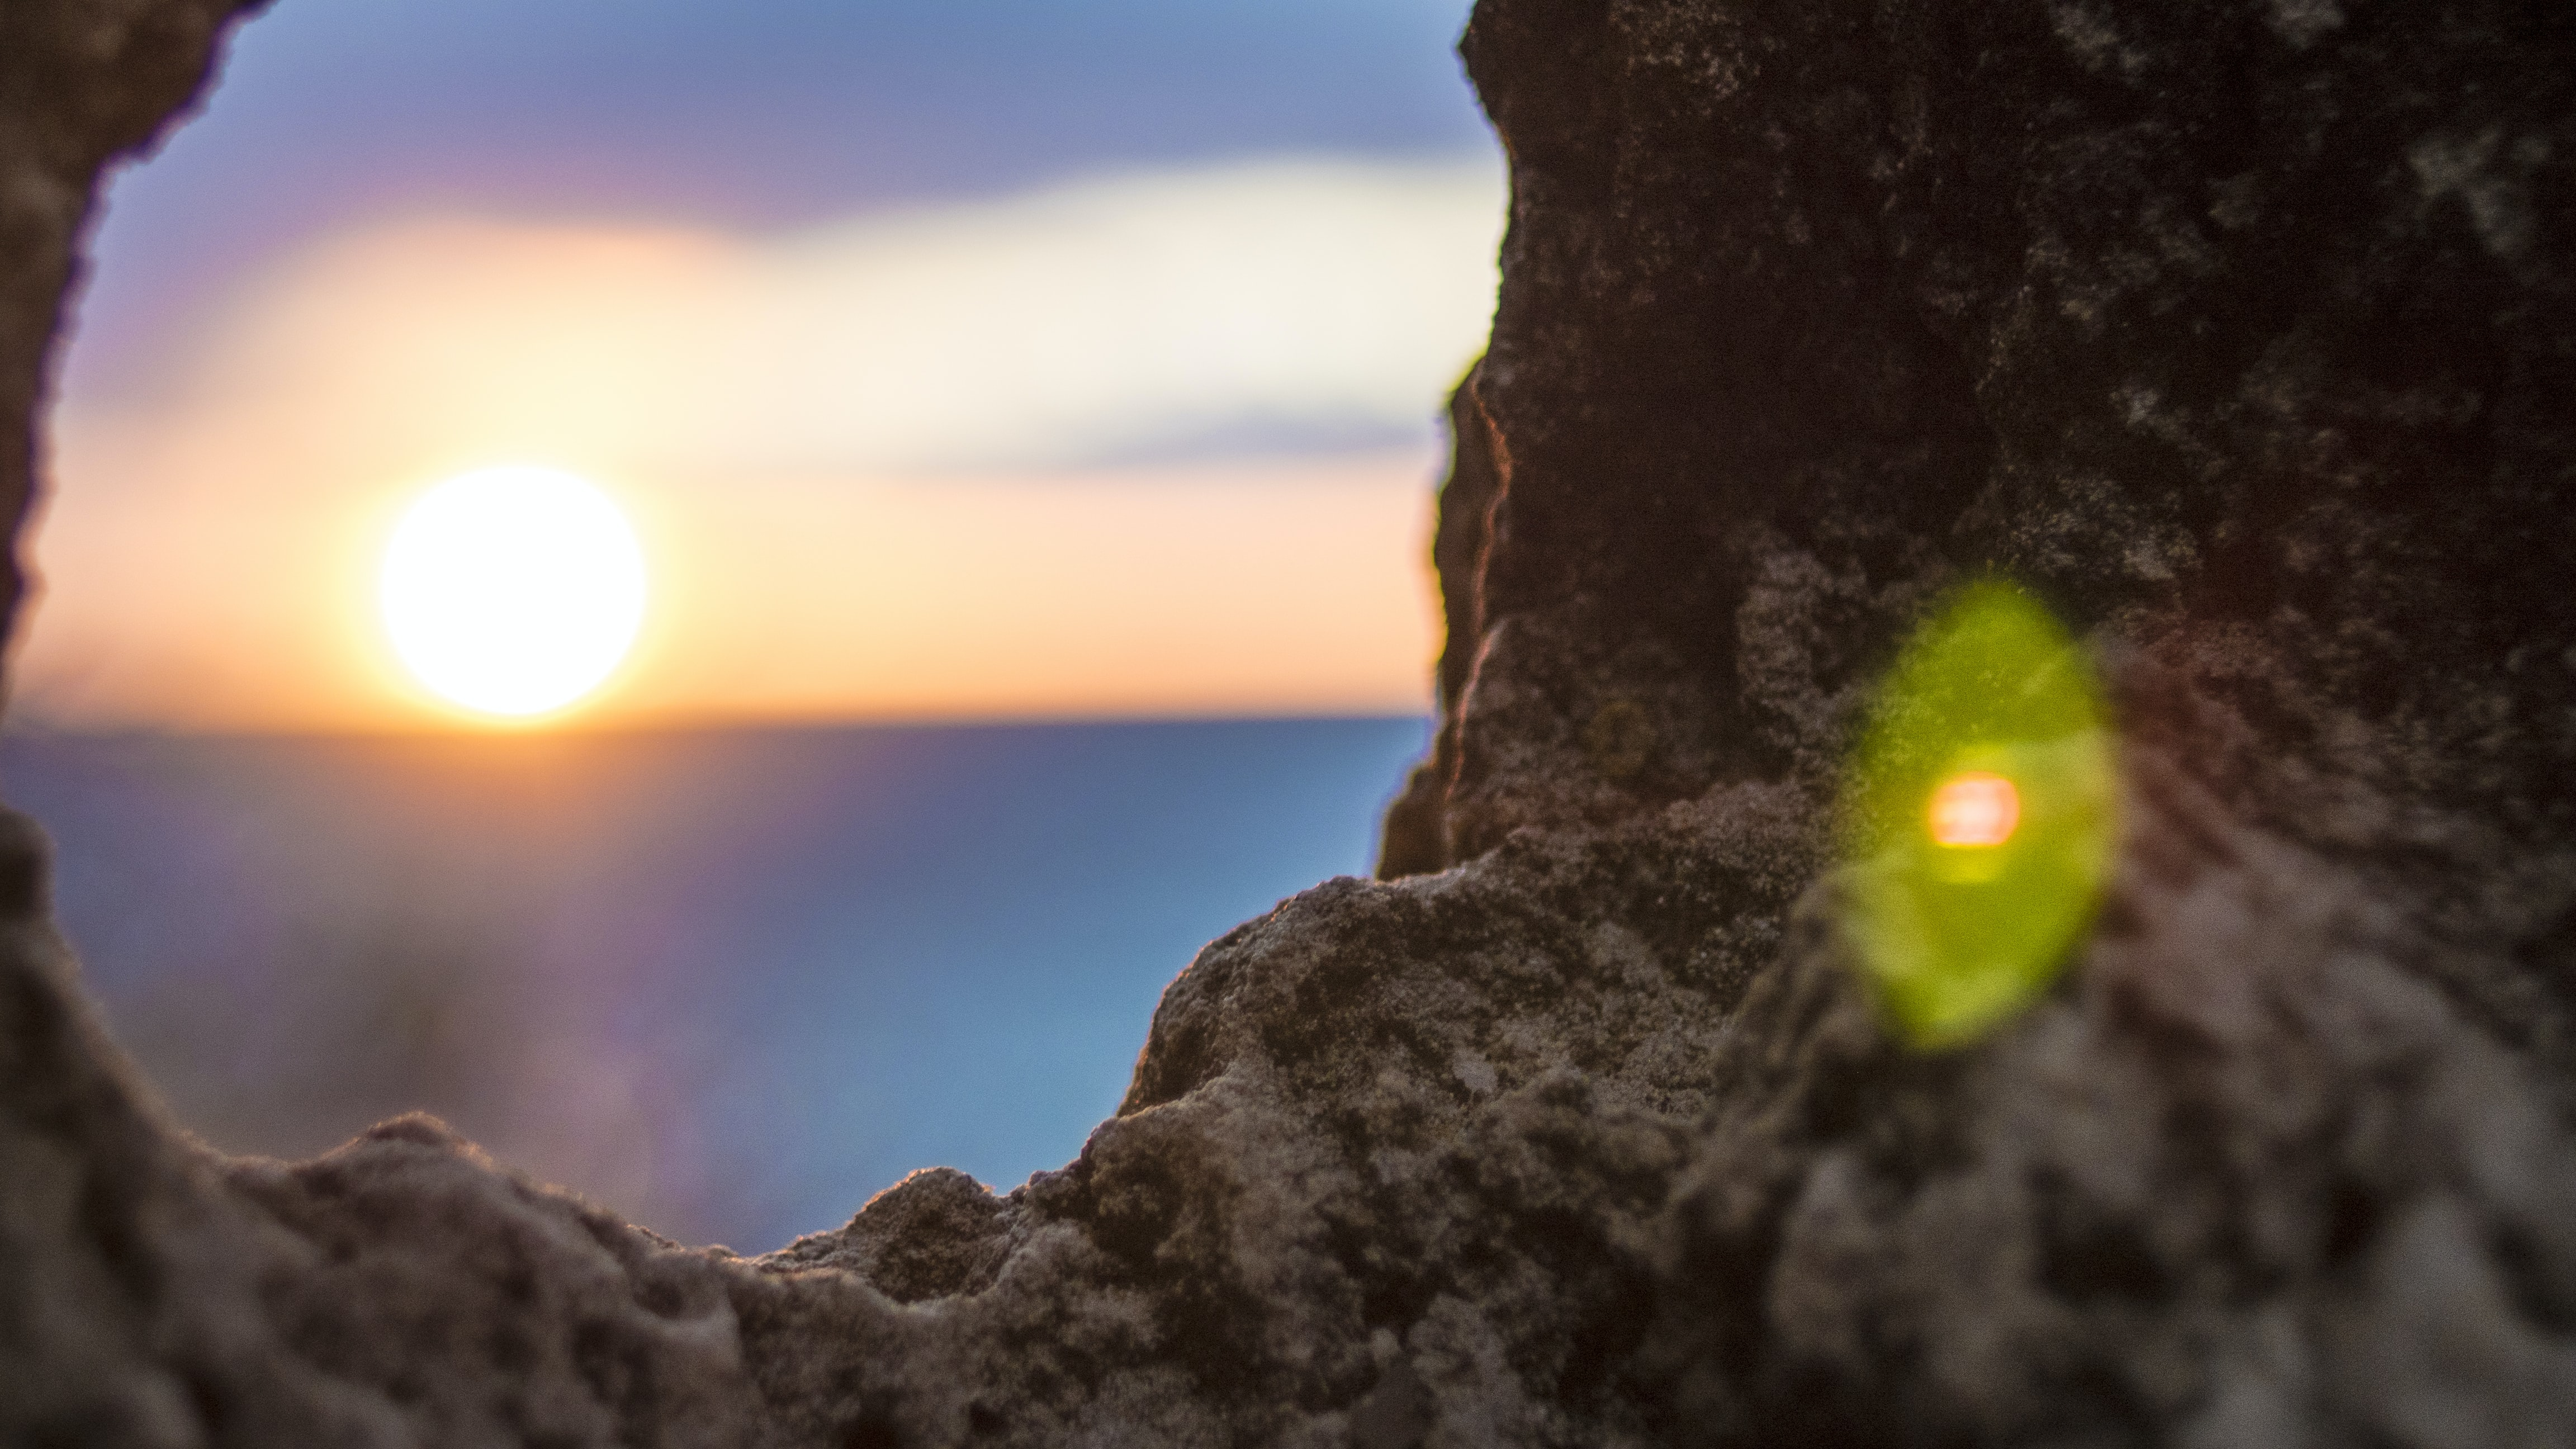 shallow focus photo of rock formation